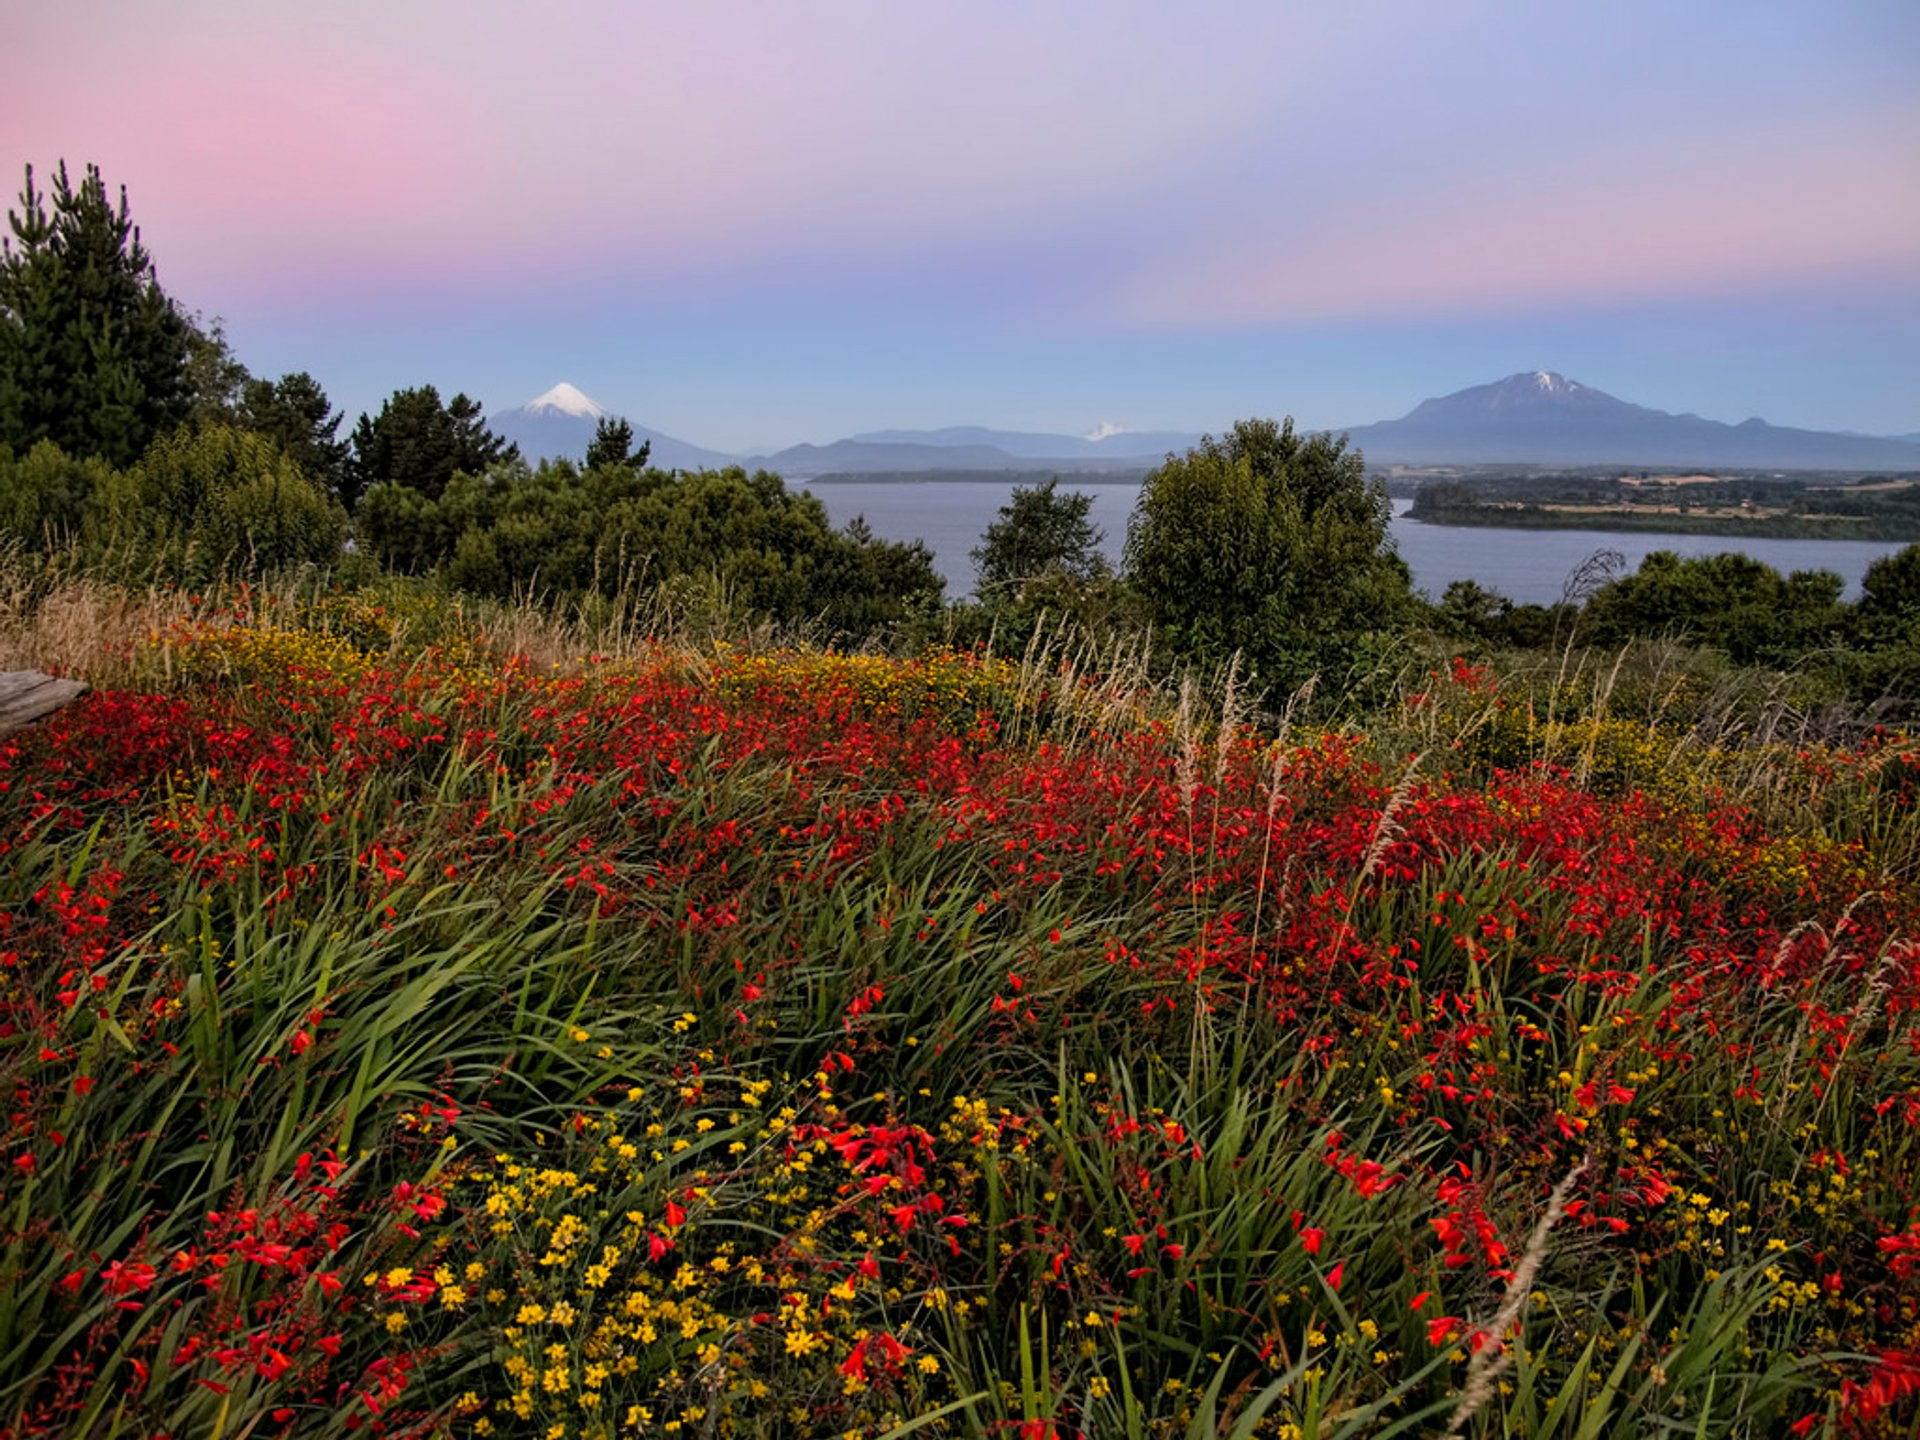 Wildflowers of Patagonia in Chile 2020 - Best Time